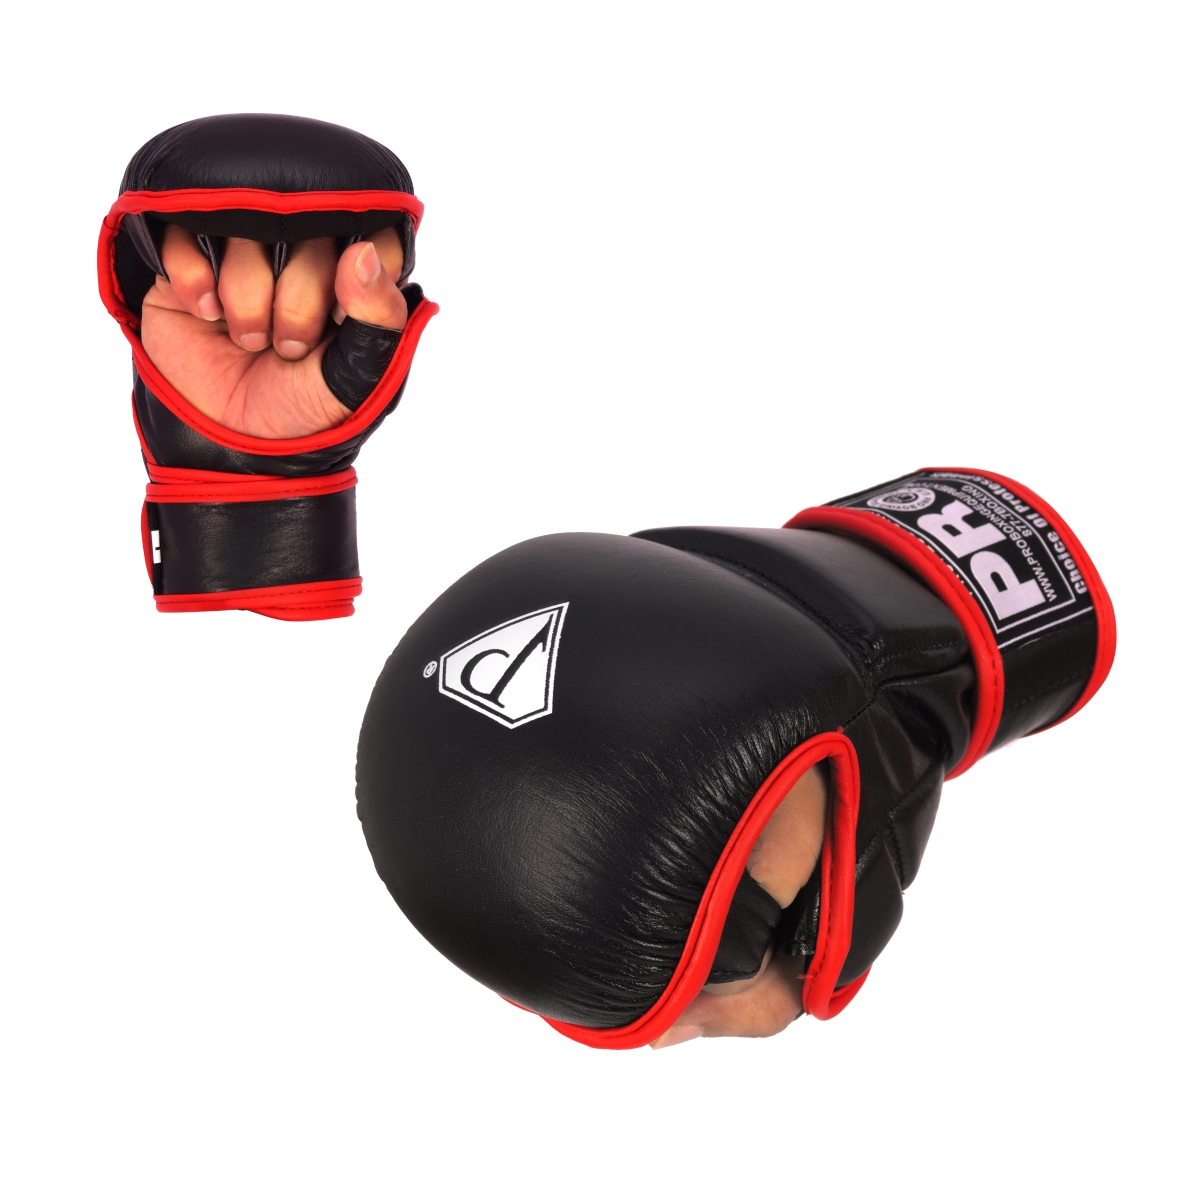 Mma Fitness Gear Equipment Home: PRO Boxing MMA Gloves 7 Oz